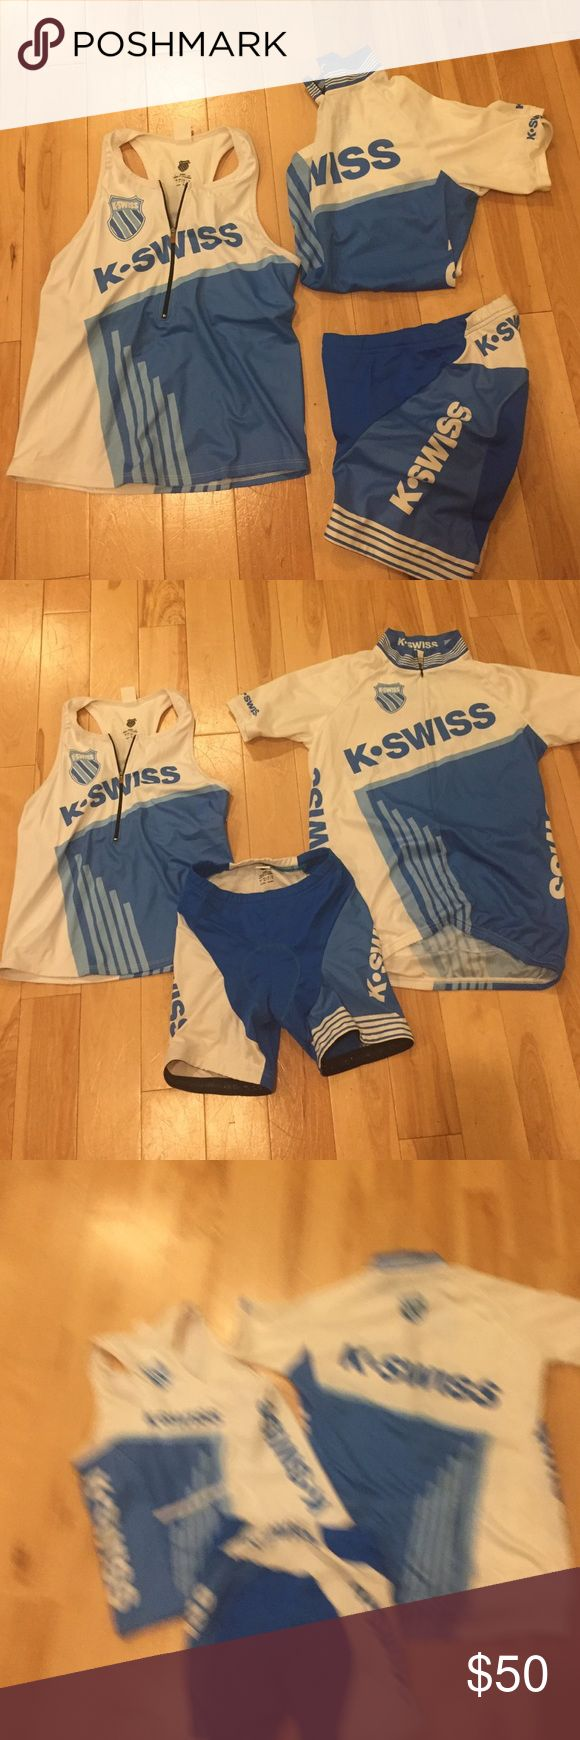 K-Swiss Full Triathlon Kit sz S Tri top and Tri shorts sz Small, cycling jersey size medium. Brand new, excellent condition. K-Swiss Tops